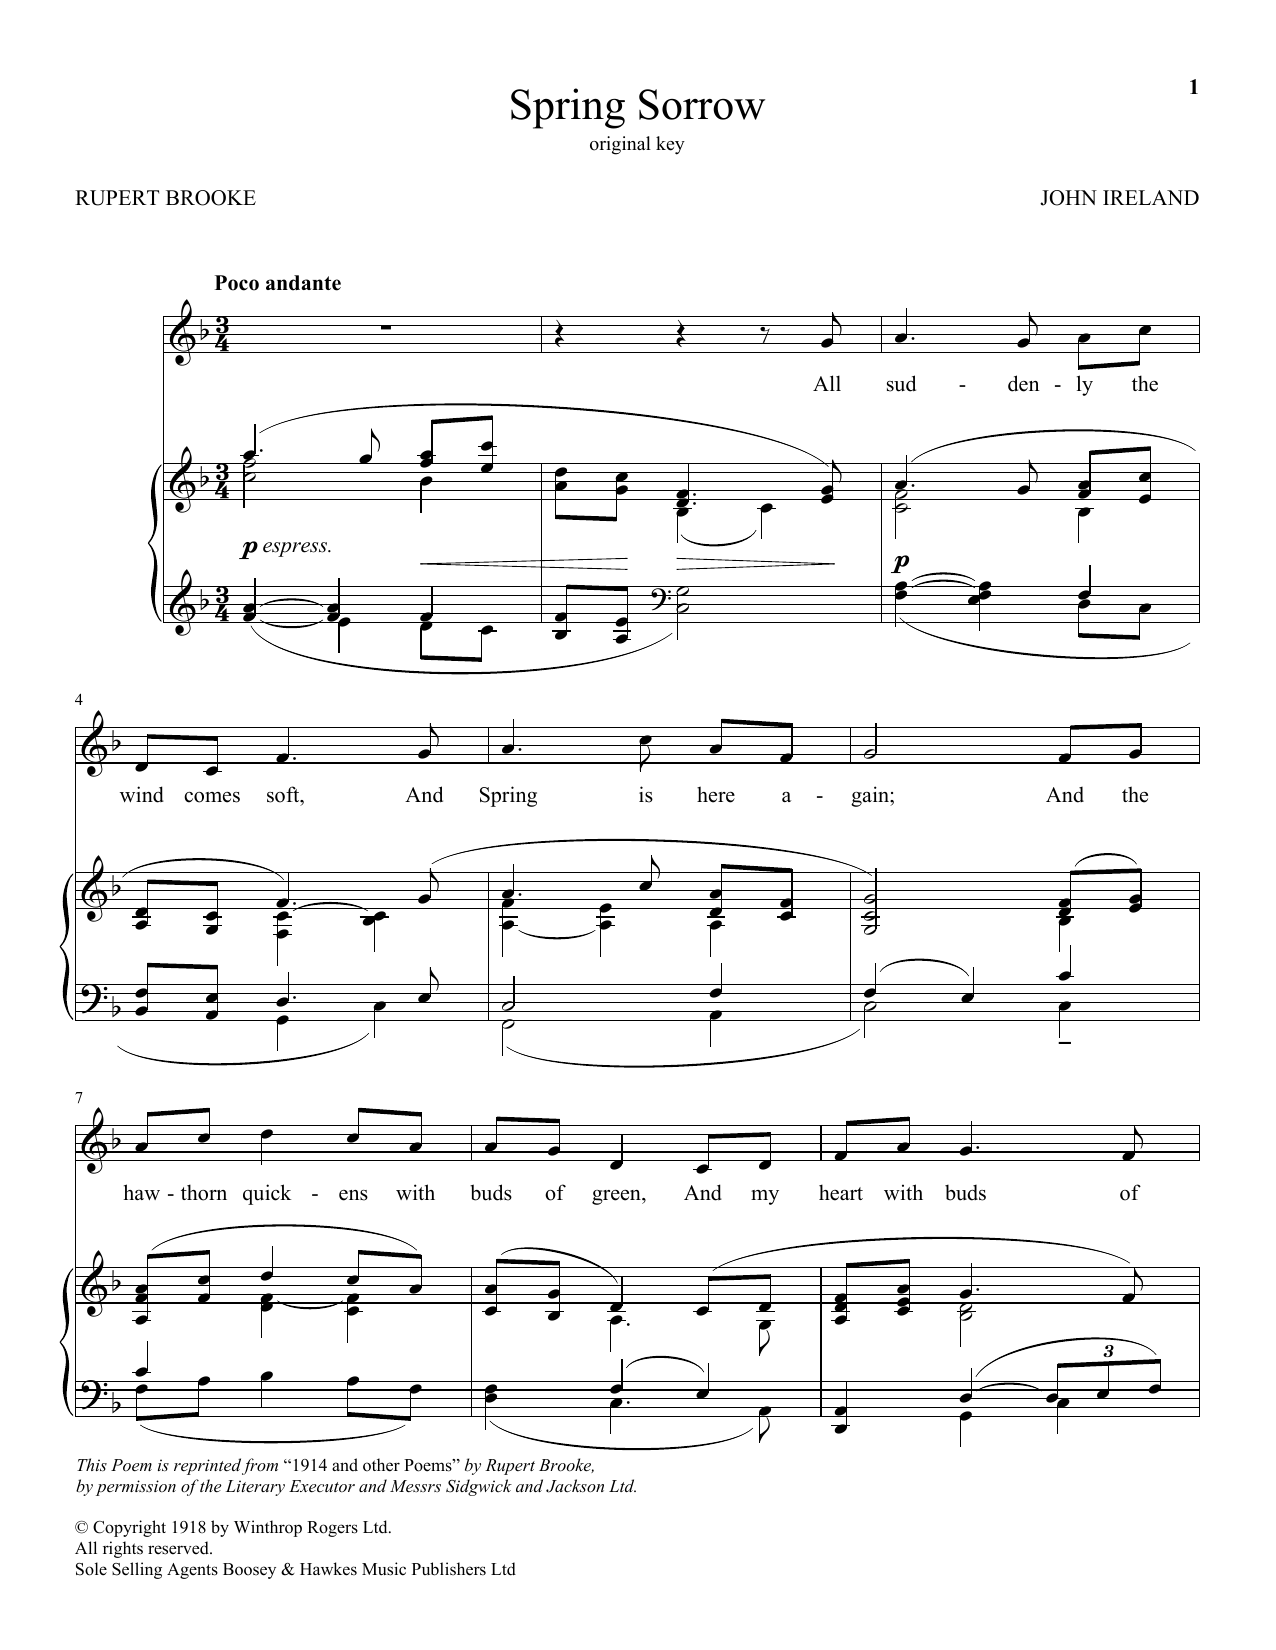 John Ireland Spring Sorrow sheet music notes and chords